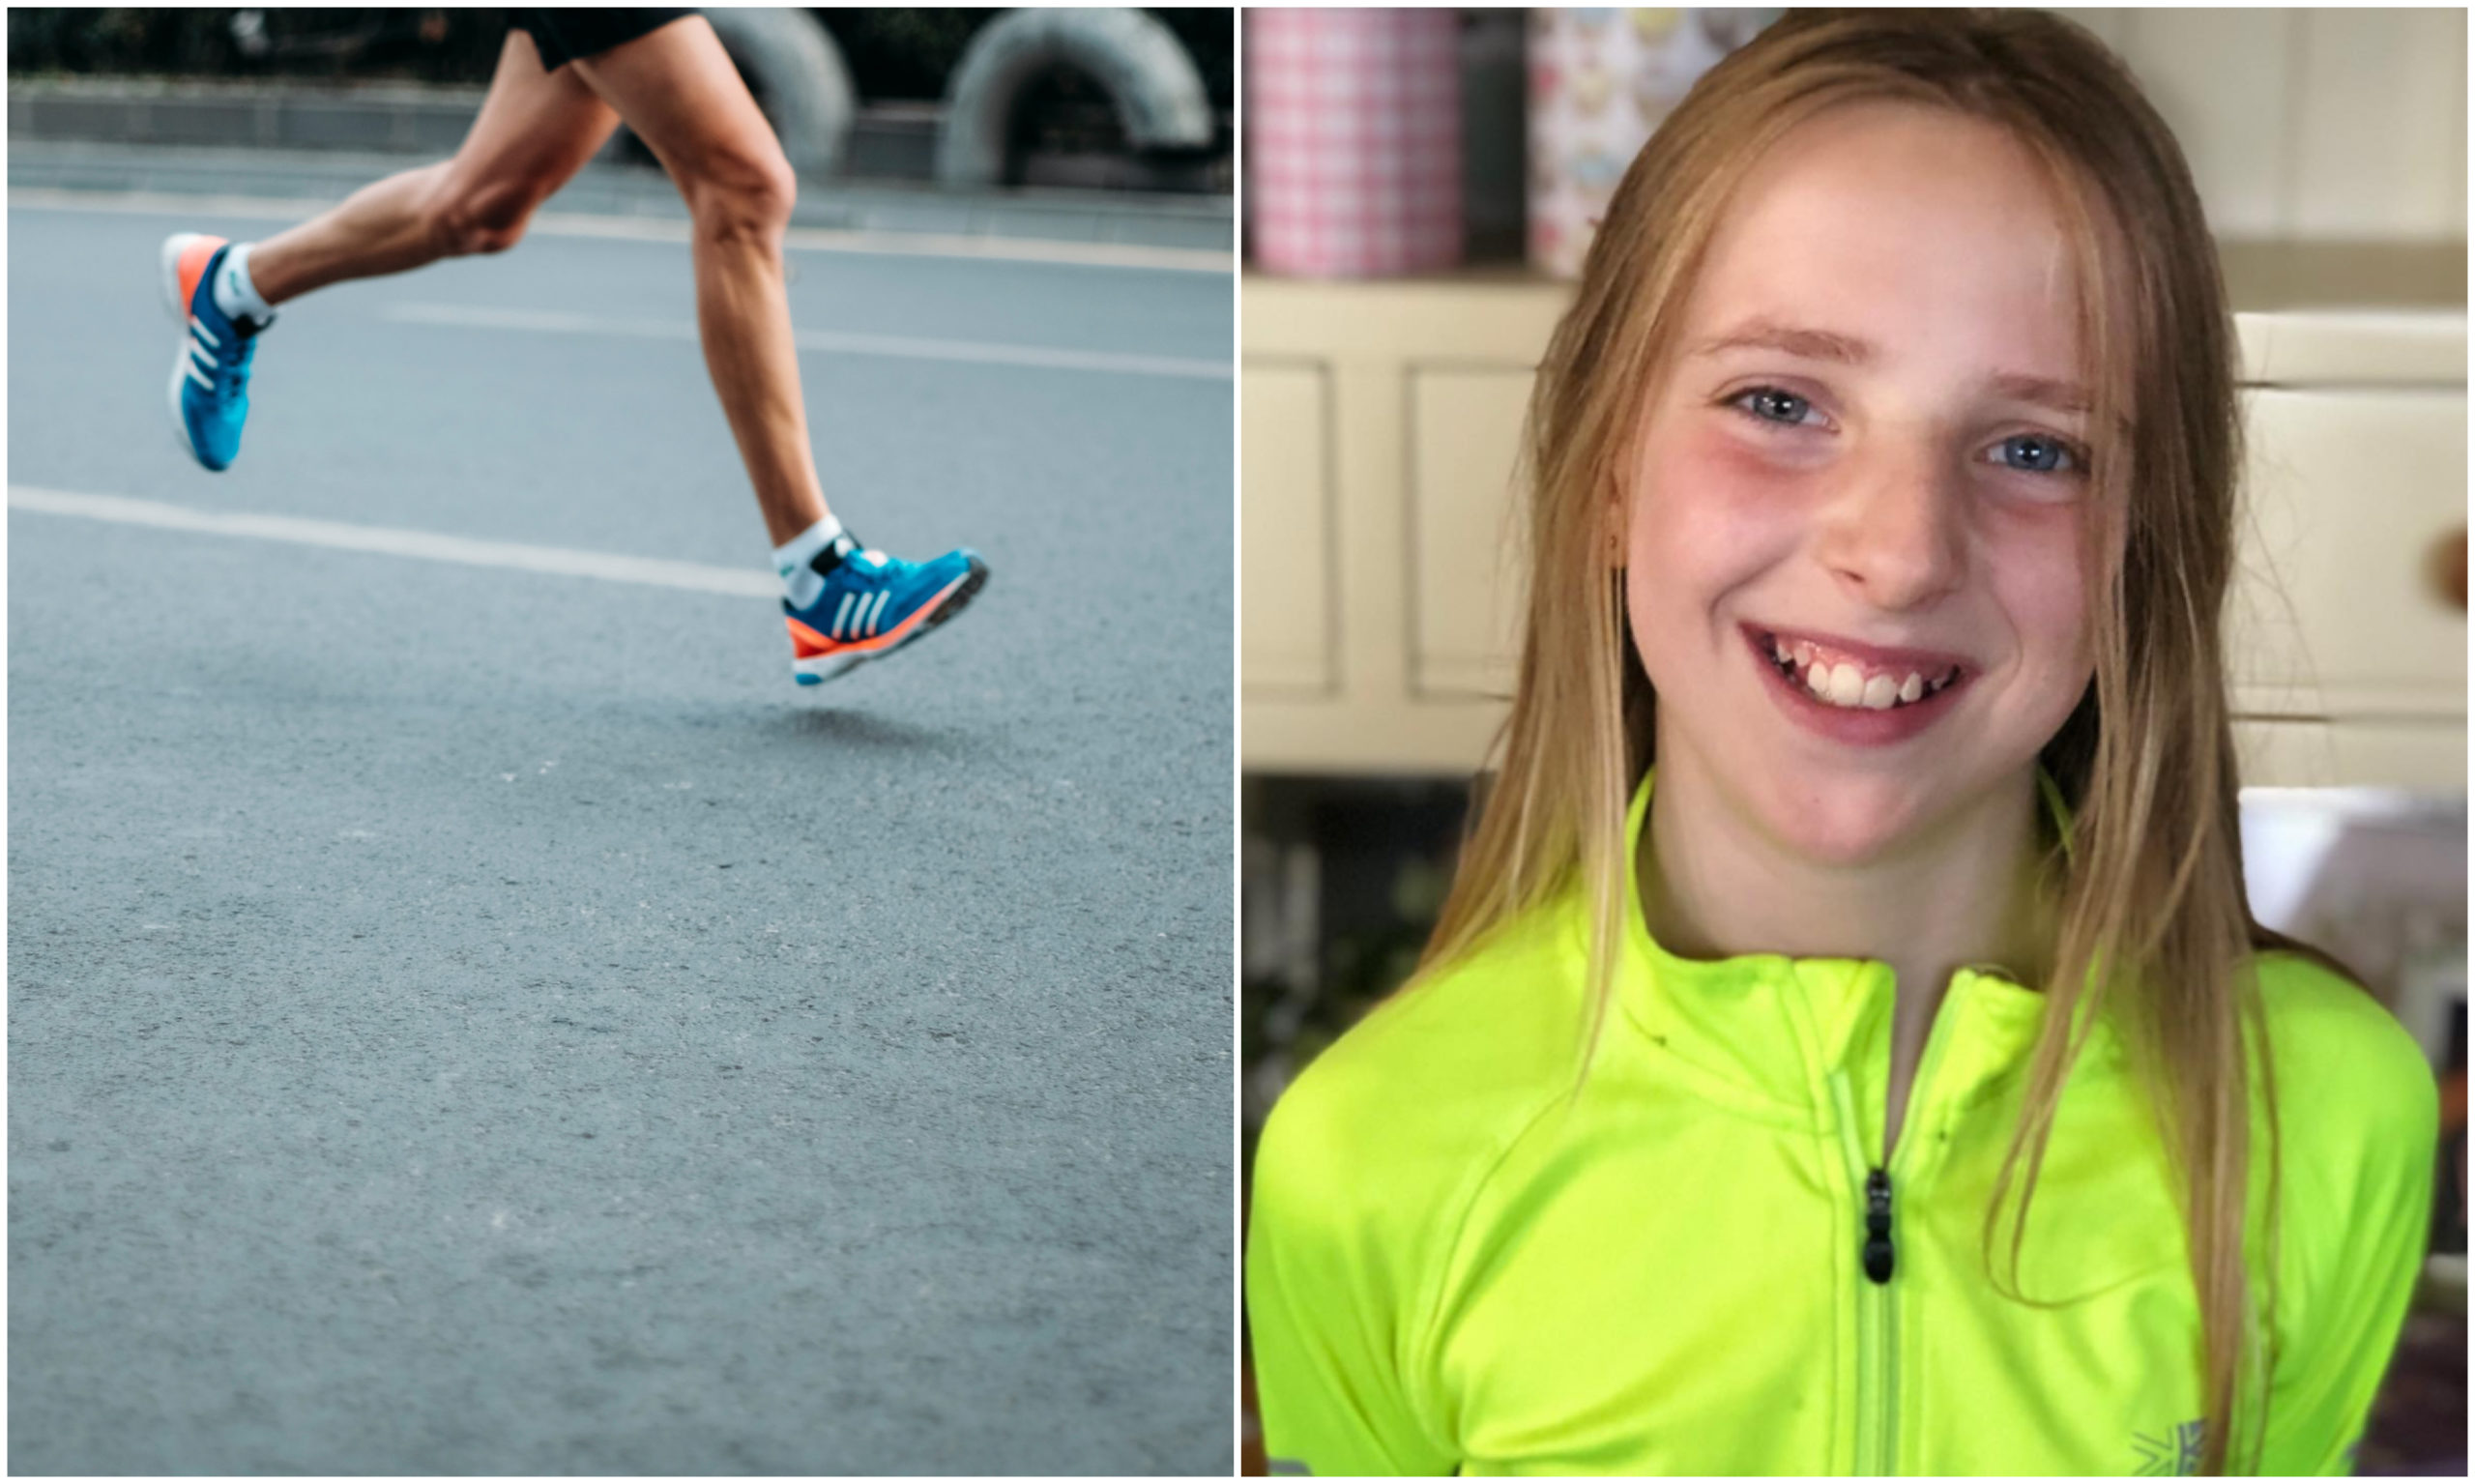 Catherine Donner is running 100 miles in 50 days for local causes on Lewis